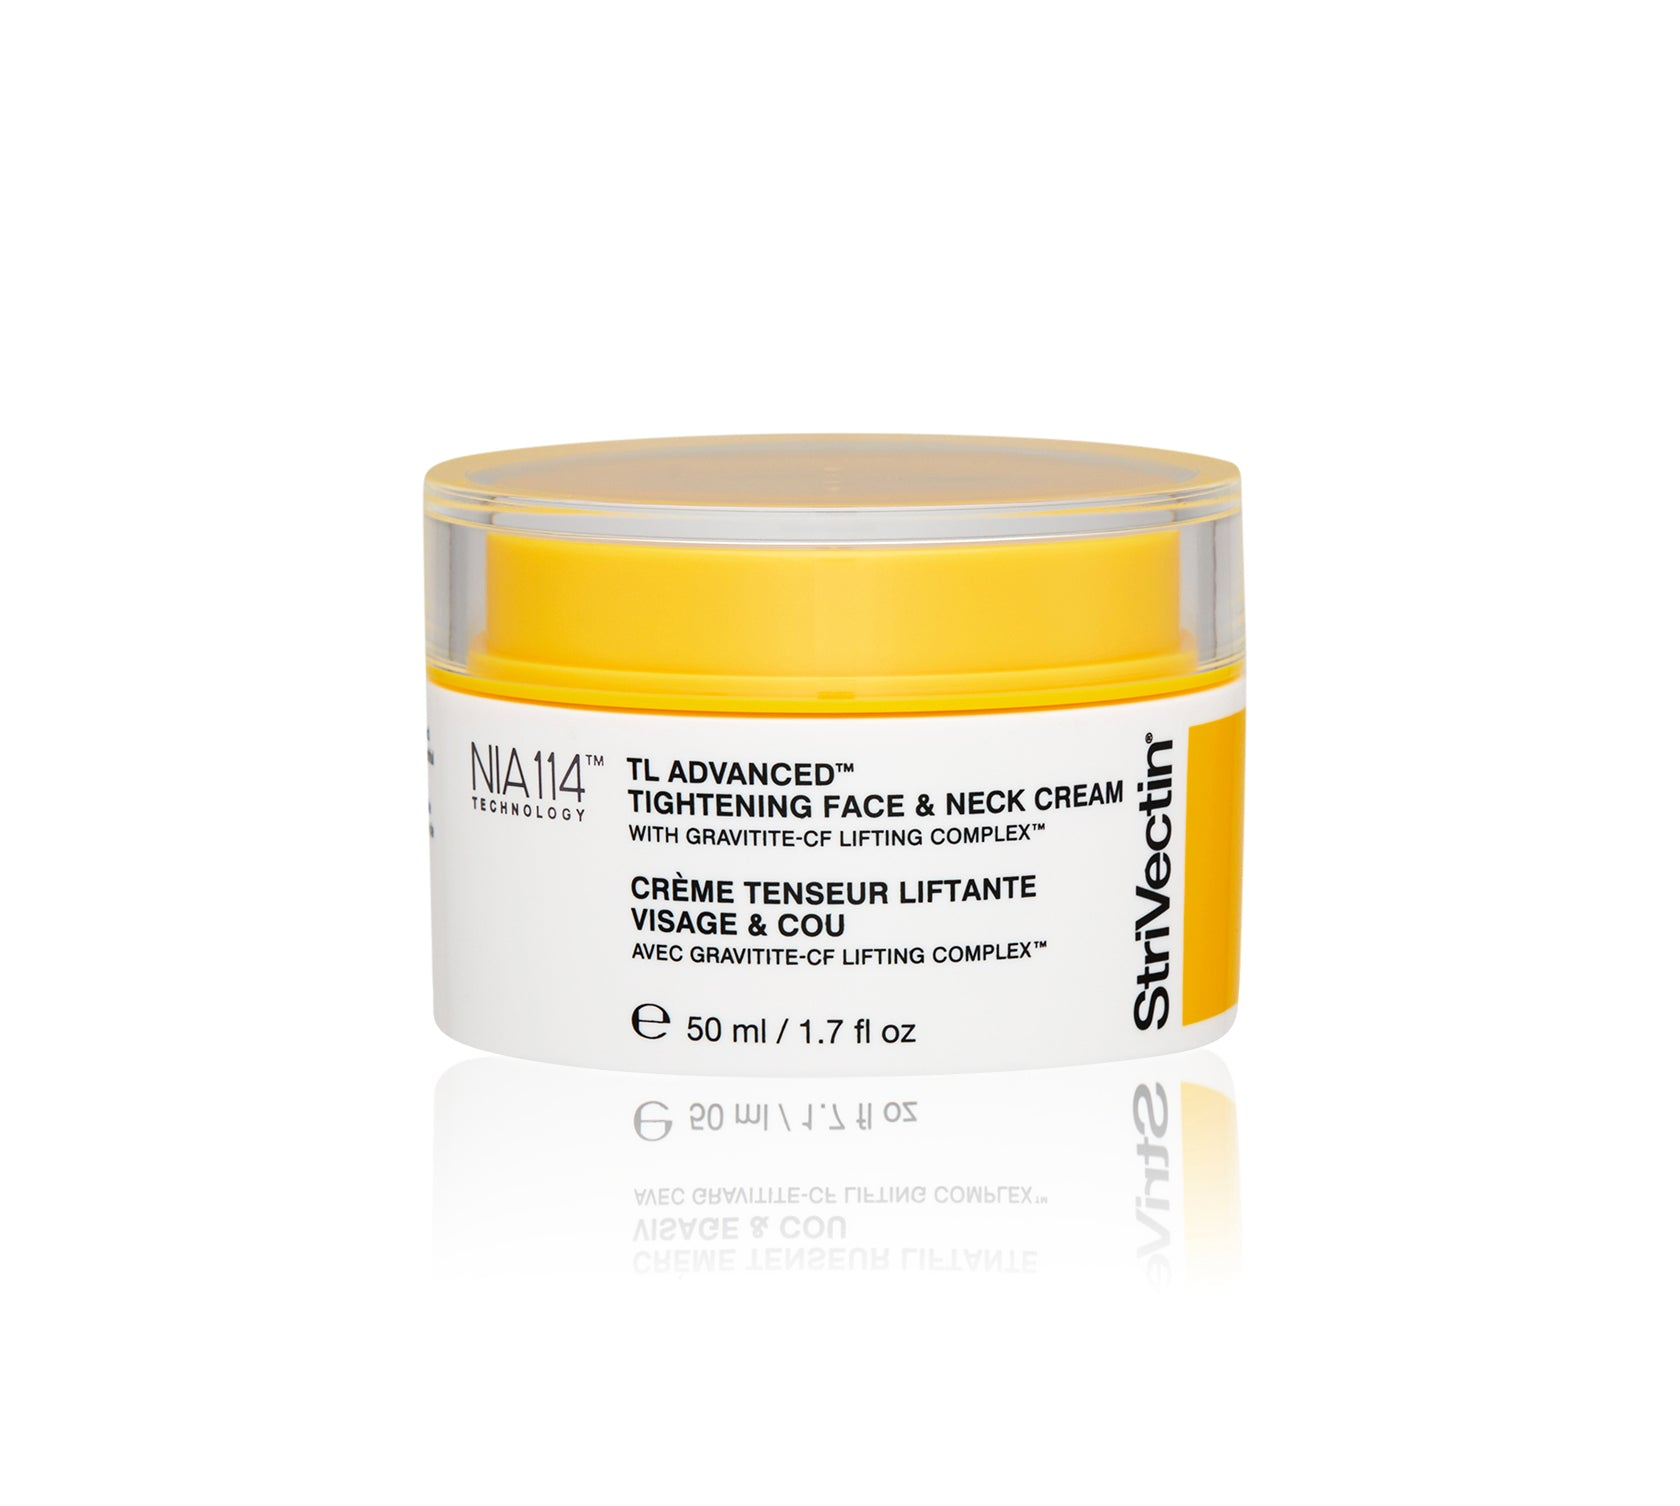 Nia114 Technology TL Advanced Tightening Face & Neck Cream